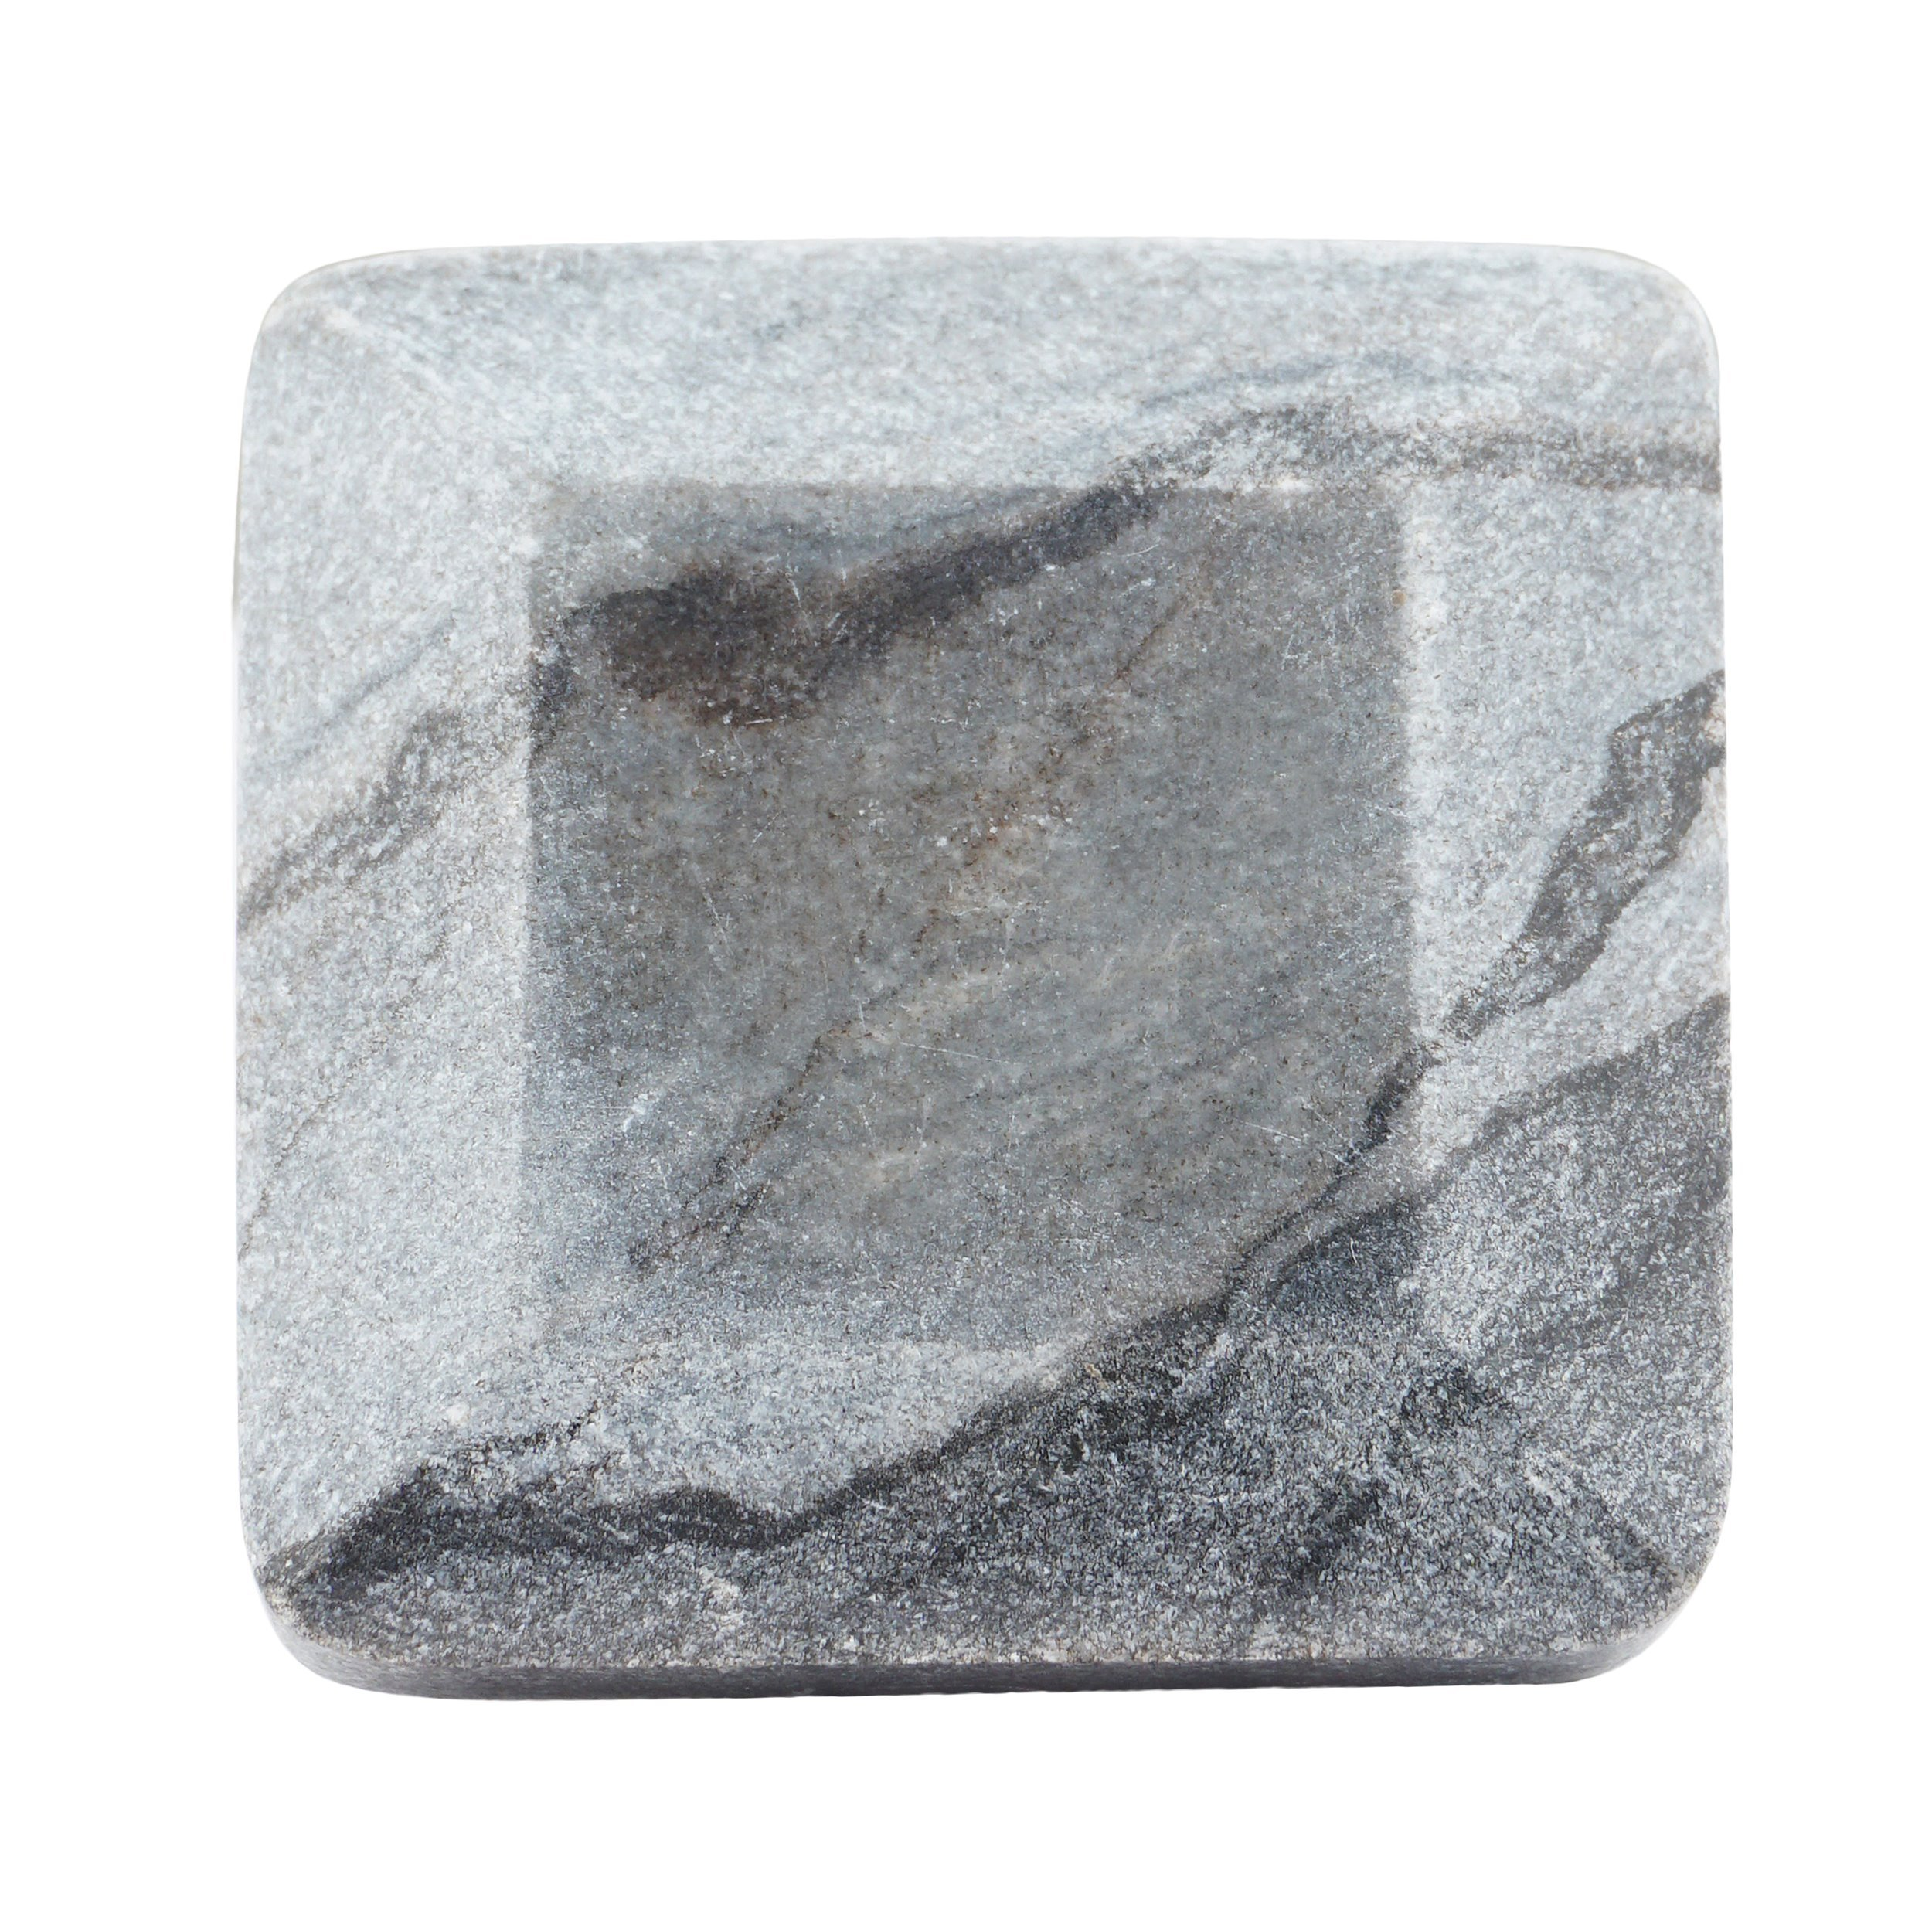 Set of 4 Grey Marble Square Faceted Knobs or Pulls for Cabinets, Dressers and Drawers